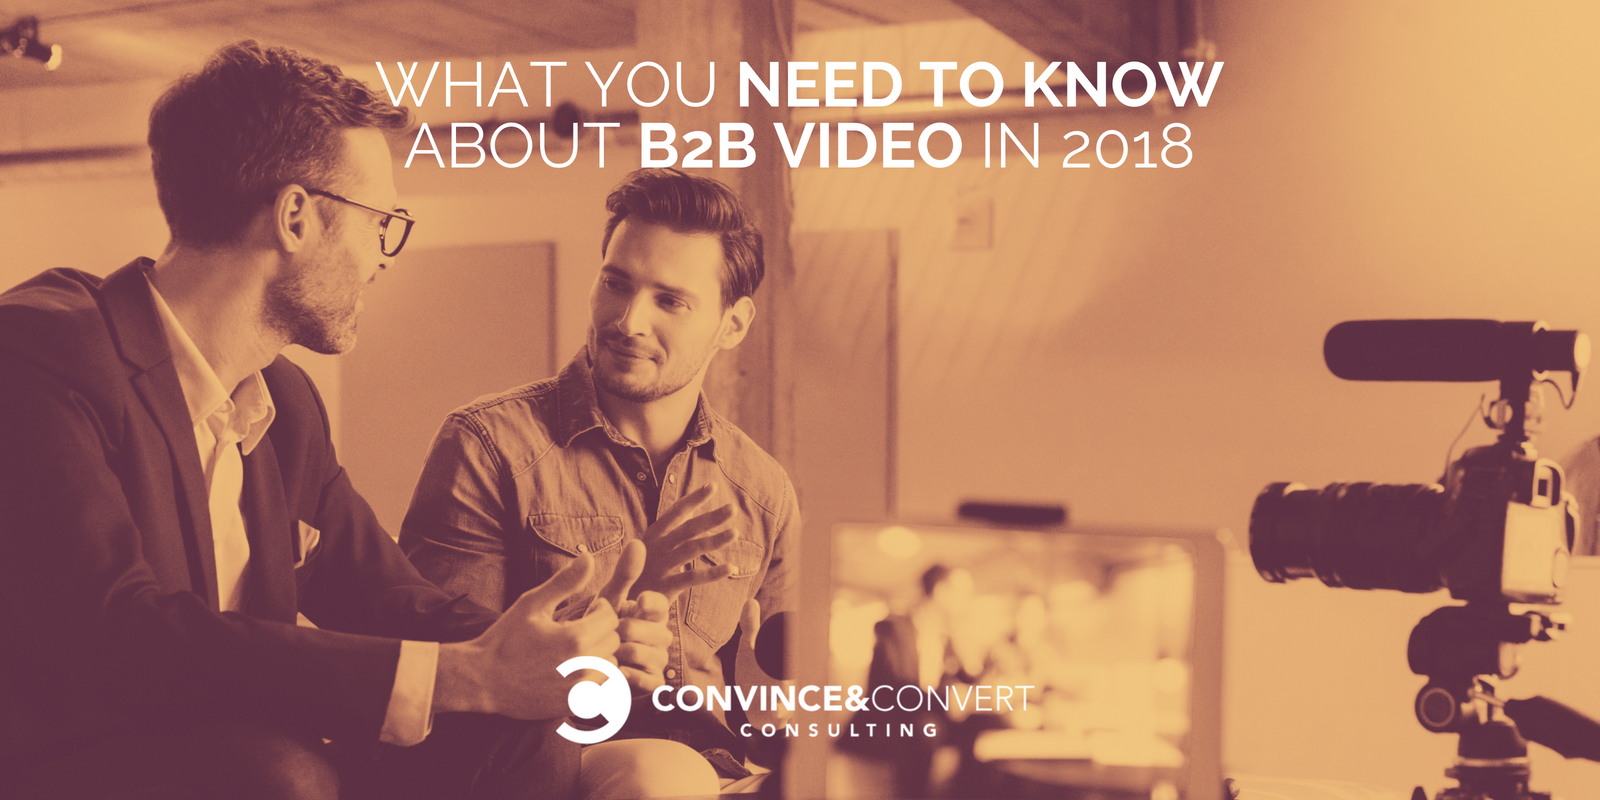 What You Need to Know About B2B Video in 2018